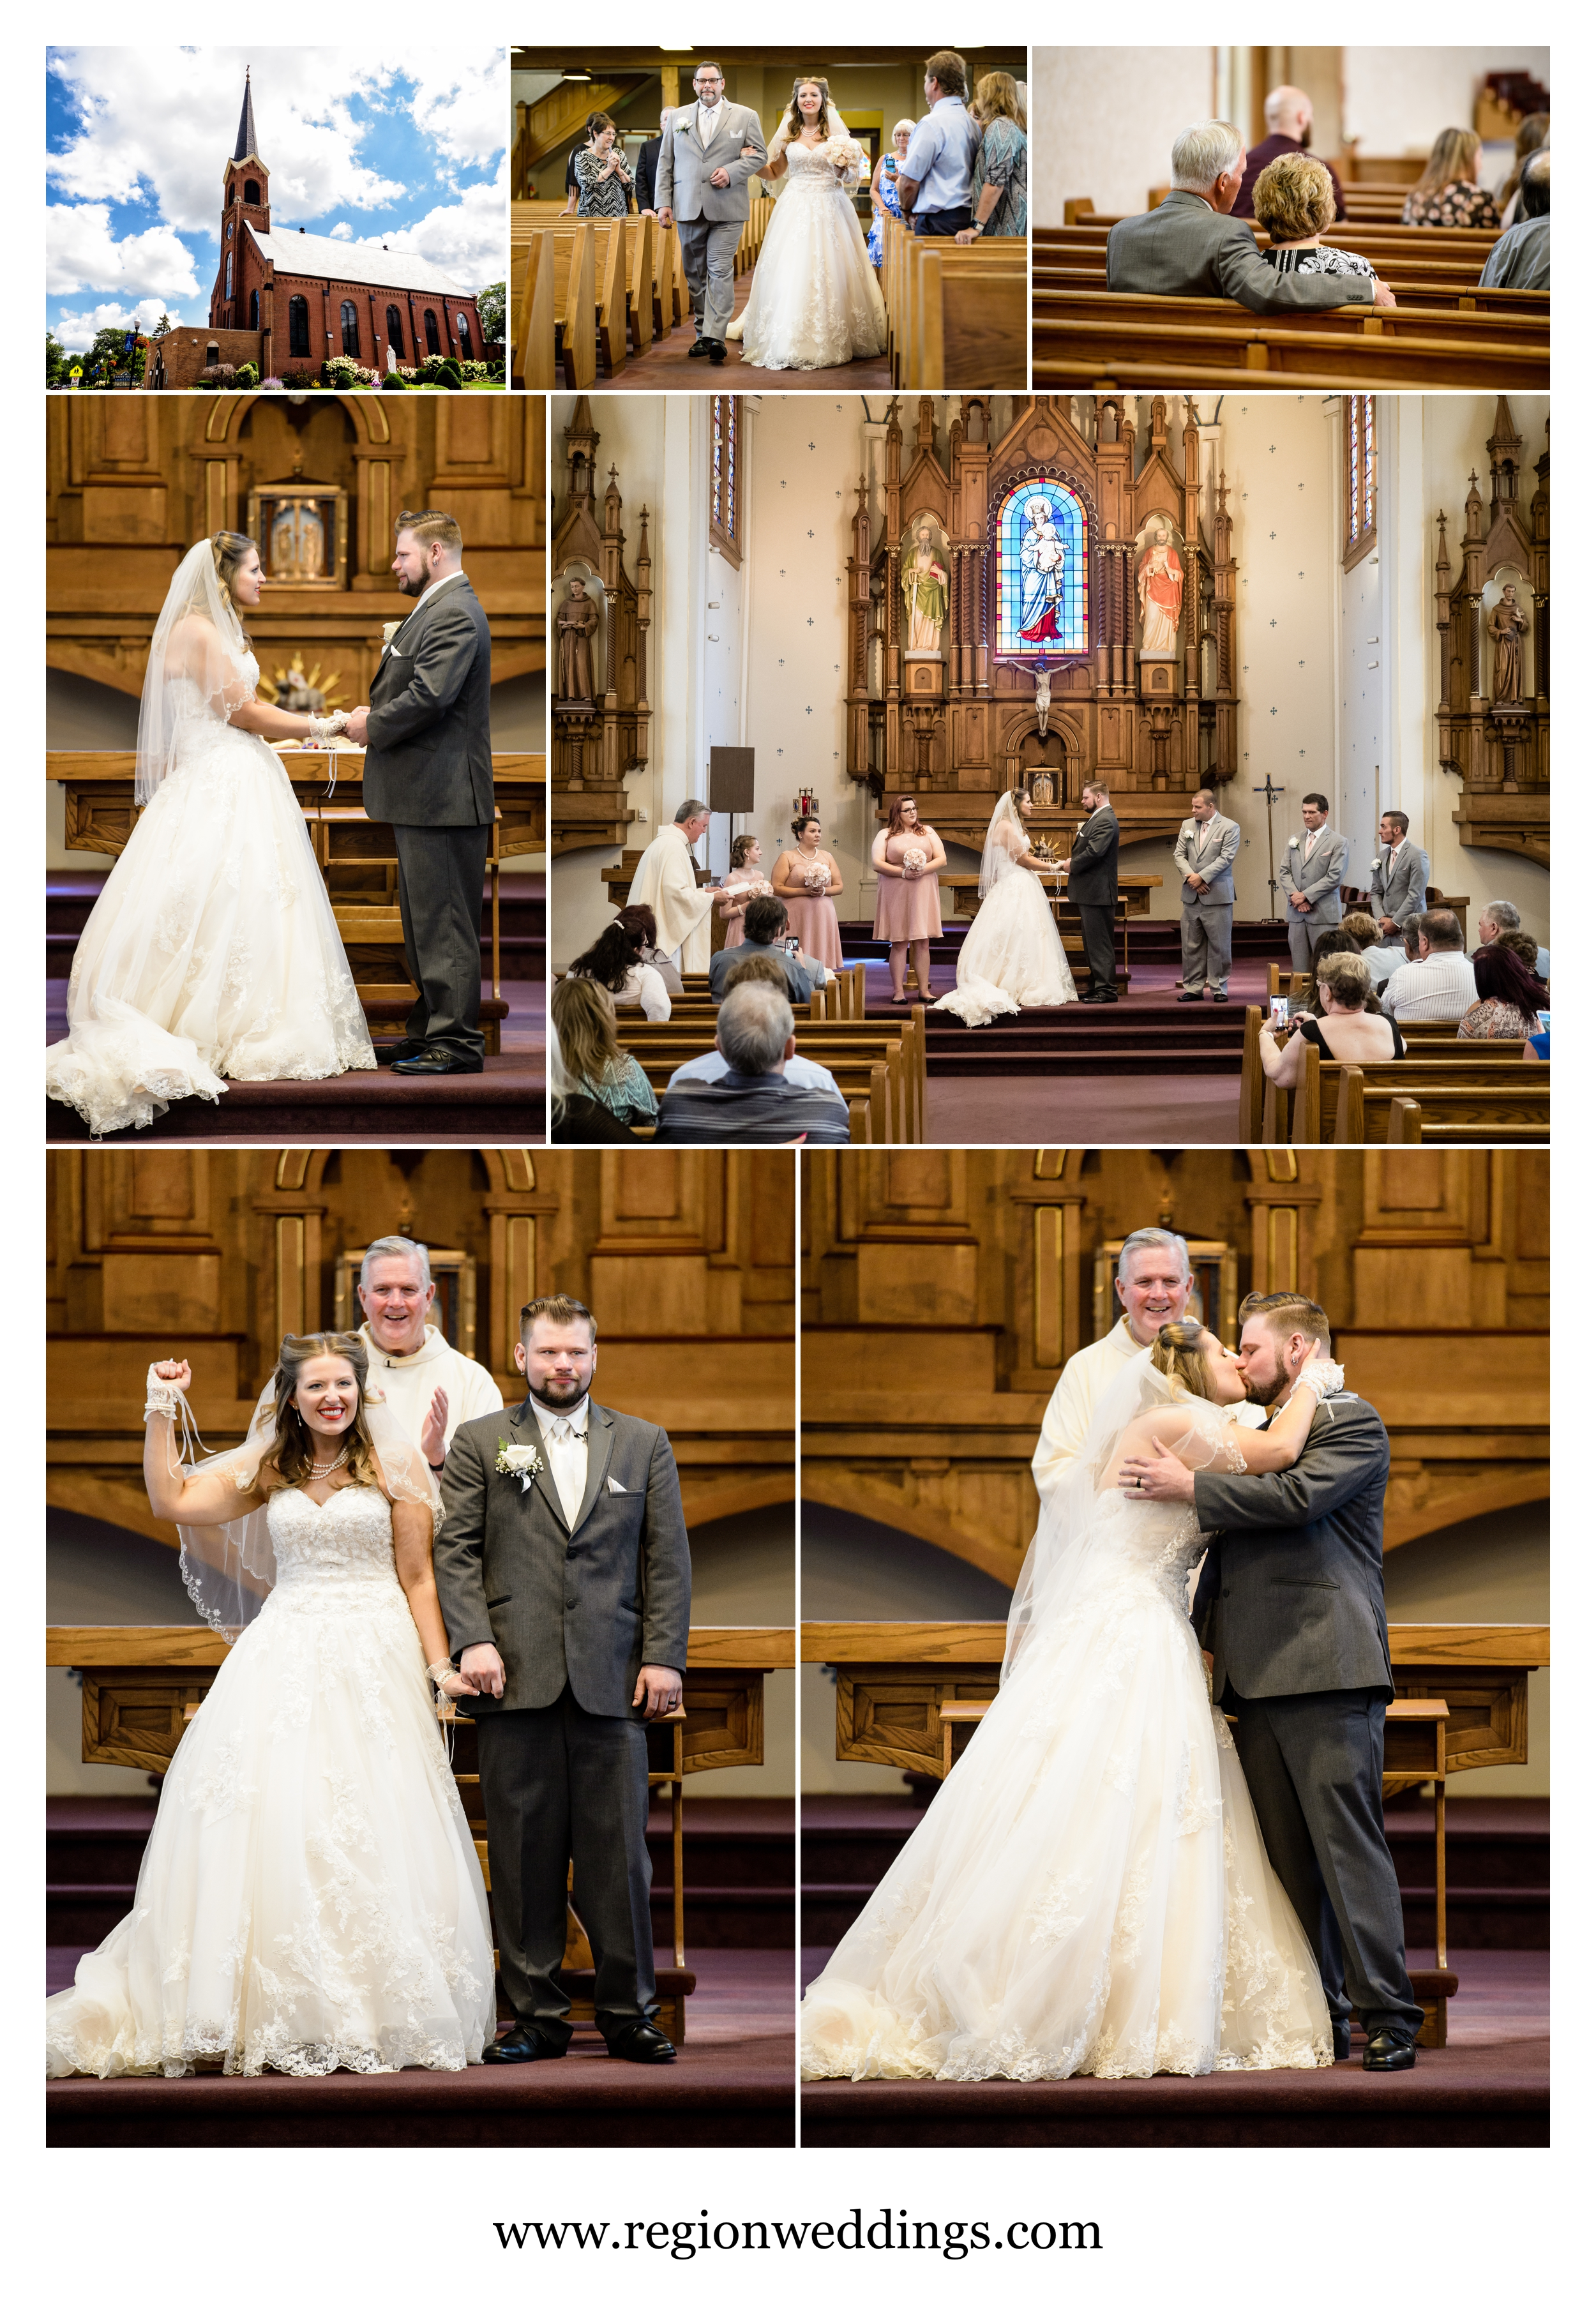 Summer wedding ceremony at Saint Mary's Church in Crown Point, Indiana.